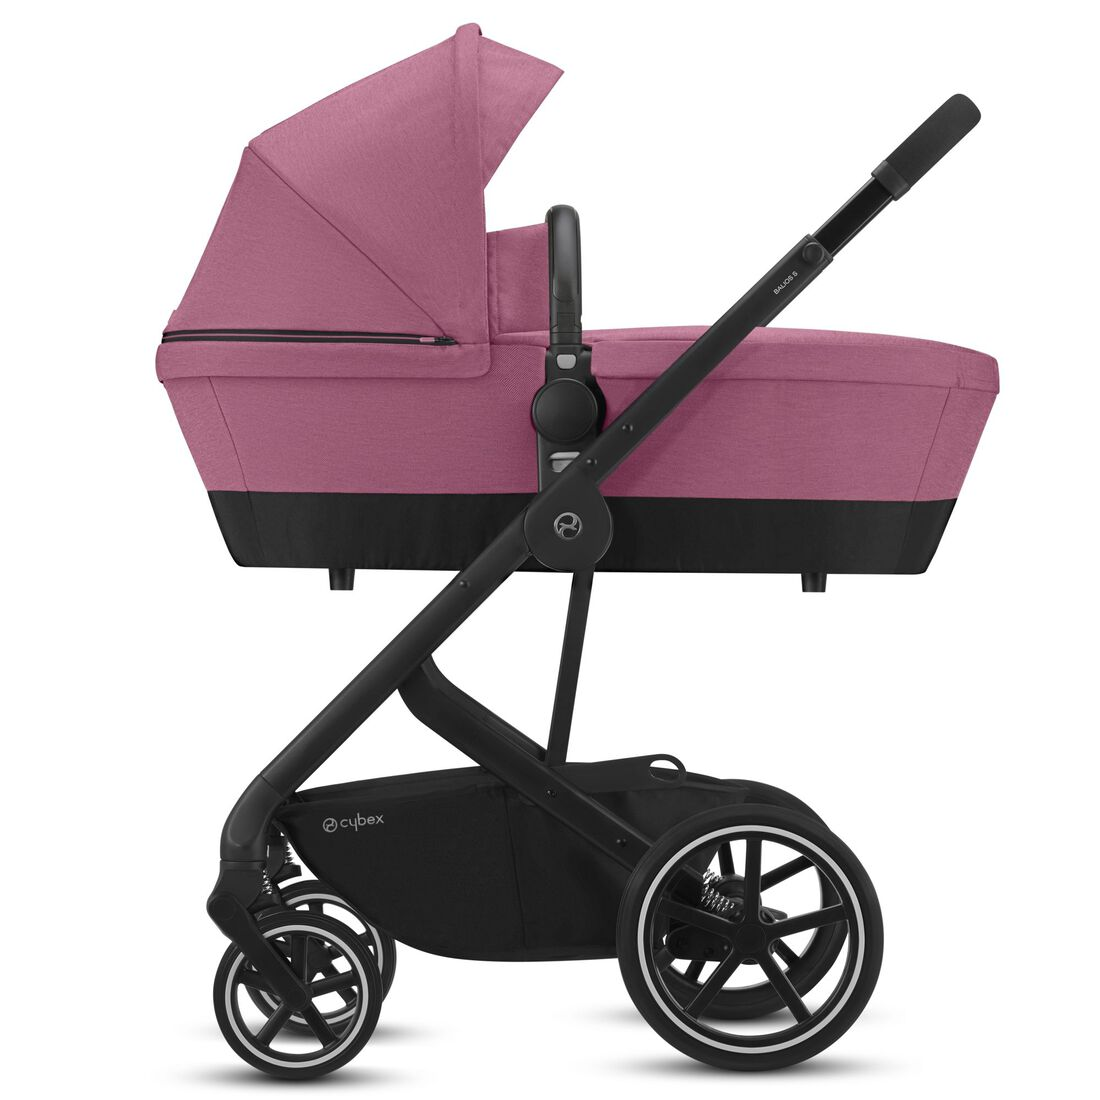 CYBEX Balios S 2-in-1 - Magnolia Pink in Magnolia Pink large image number 2